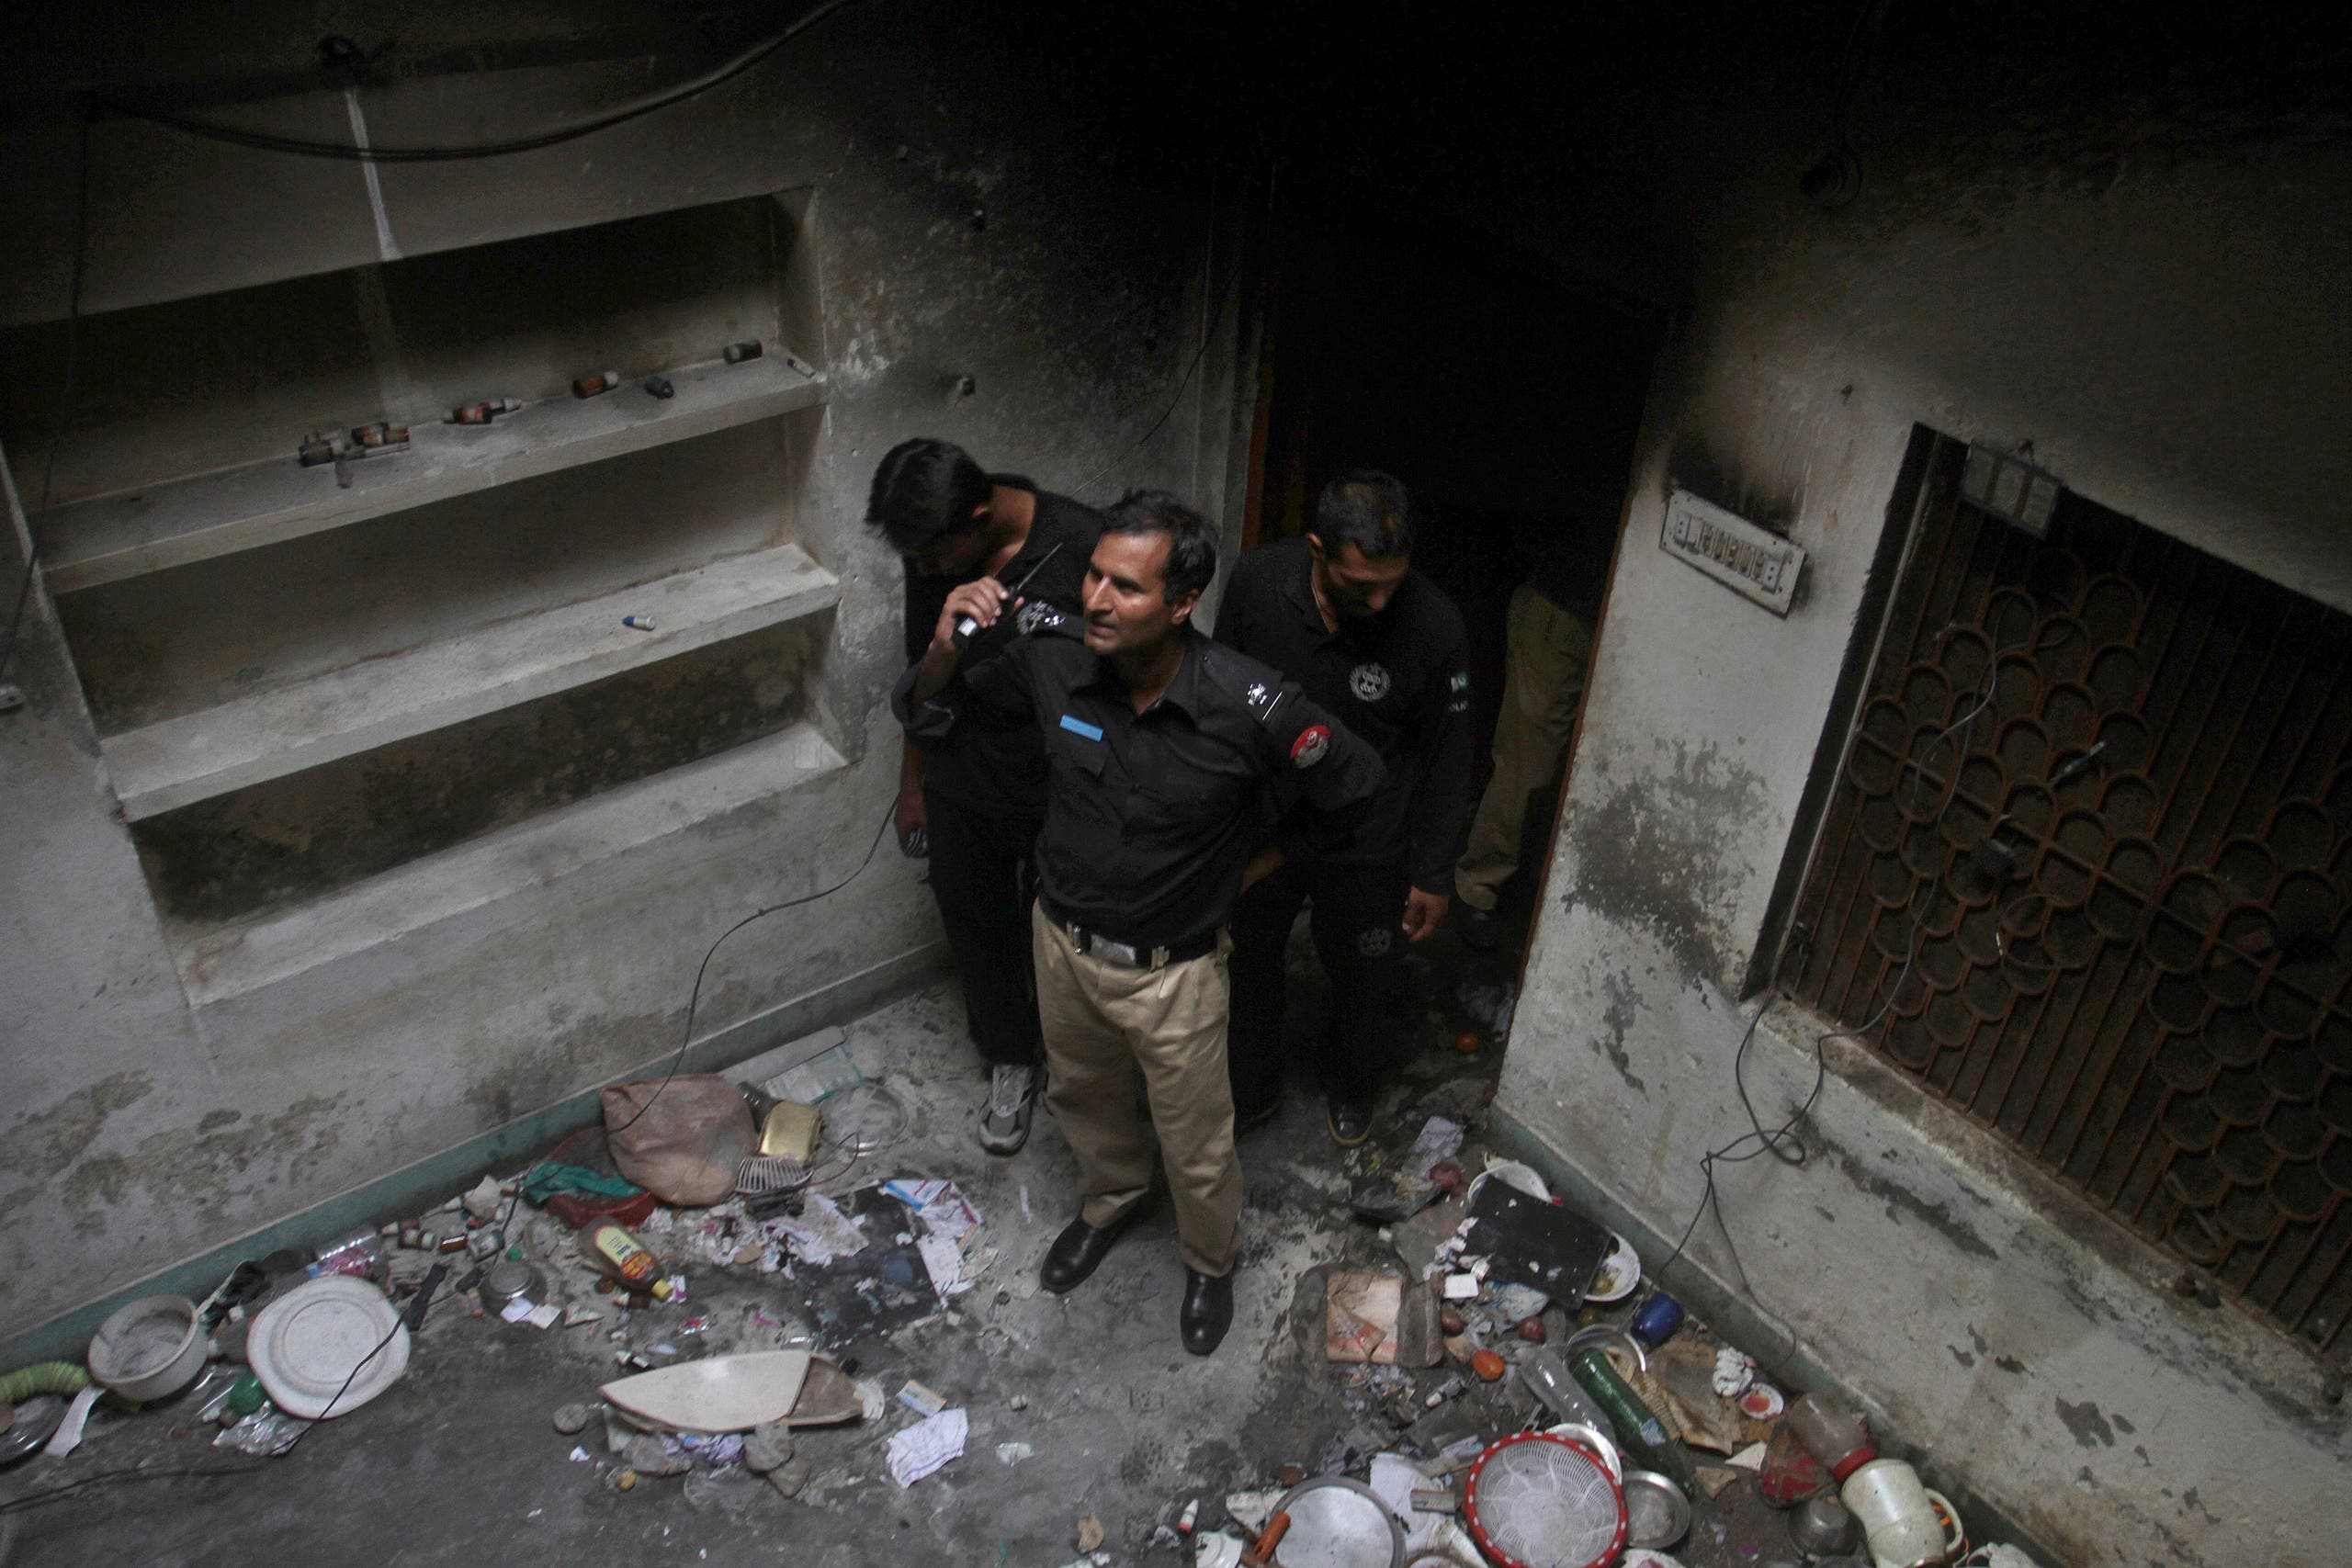 Pakistani police officers examine the house of a family belonging to the Ahmadi sect, which was torched by angry mob following rumors about blasphemous postings on Facebook, in Gujranwala, Pakistan. (AP)